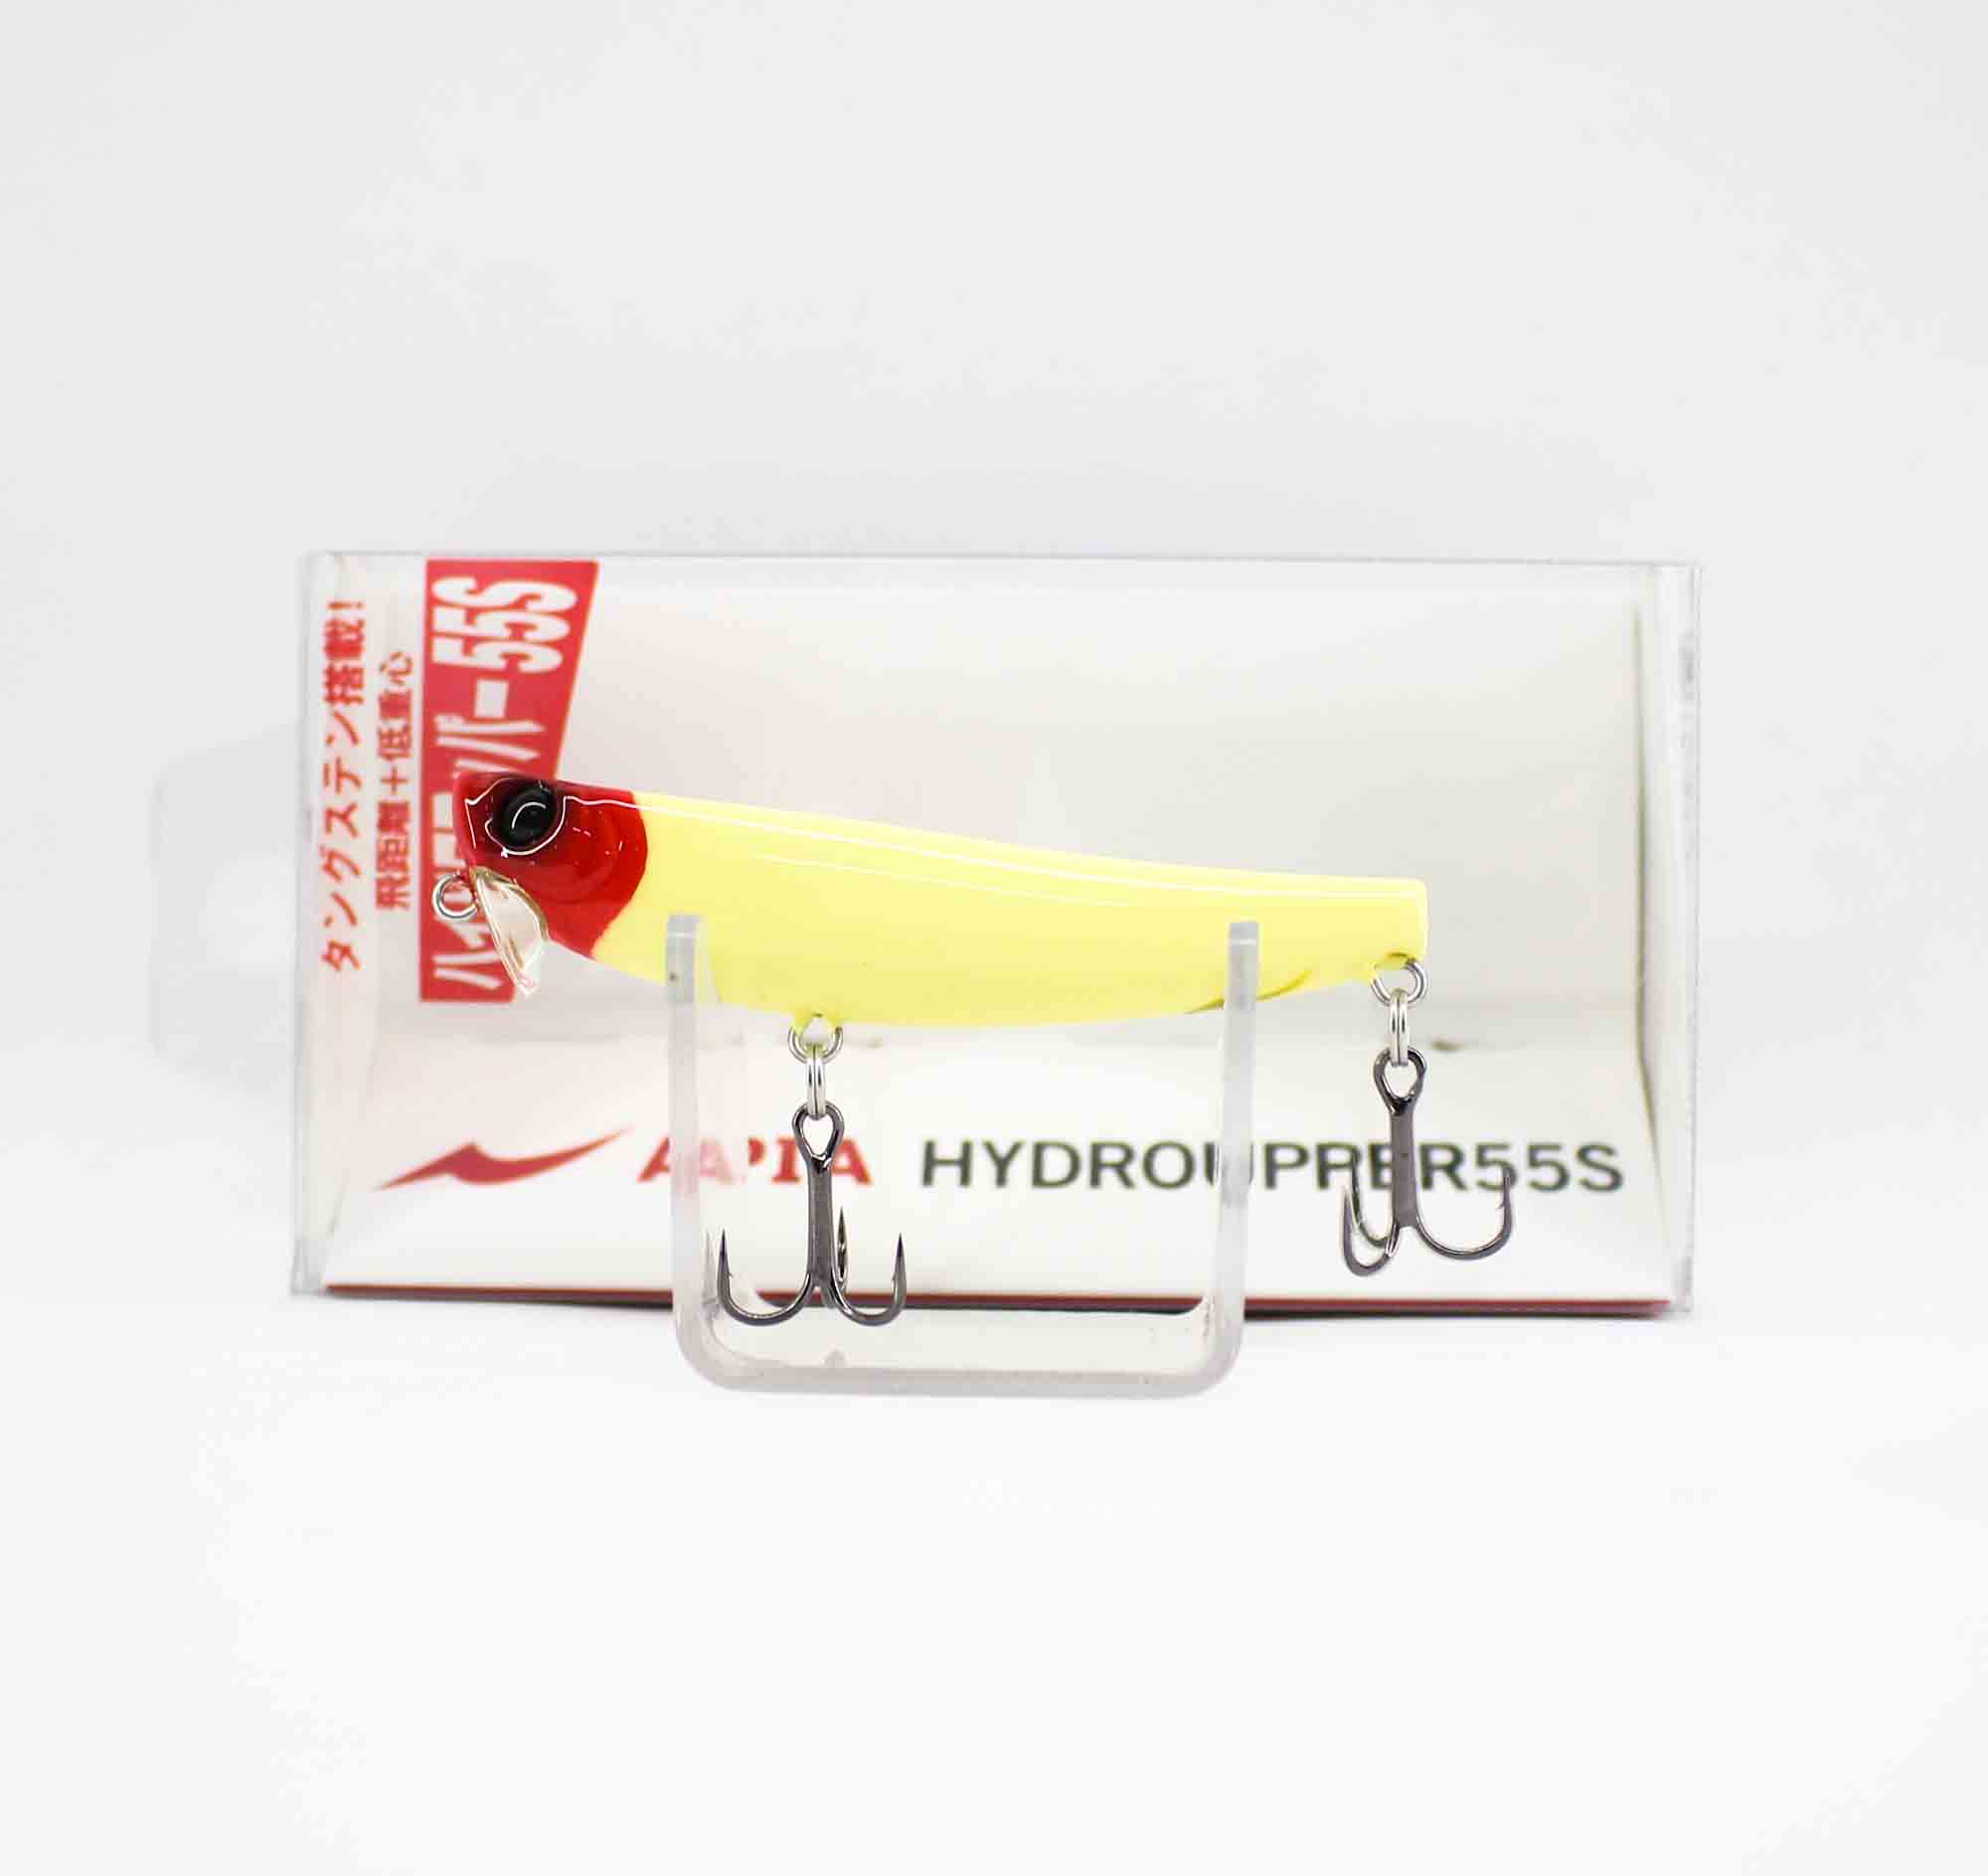 Apia Hydroupper 55S Sinking Lure 06 (6371)